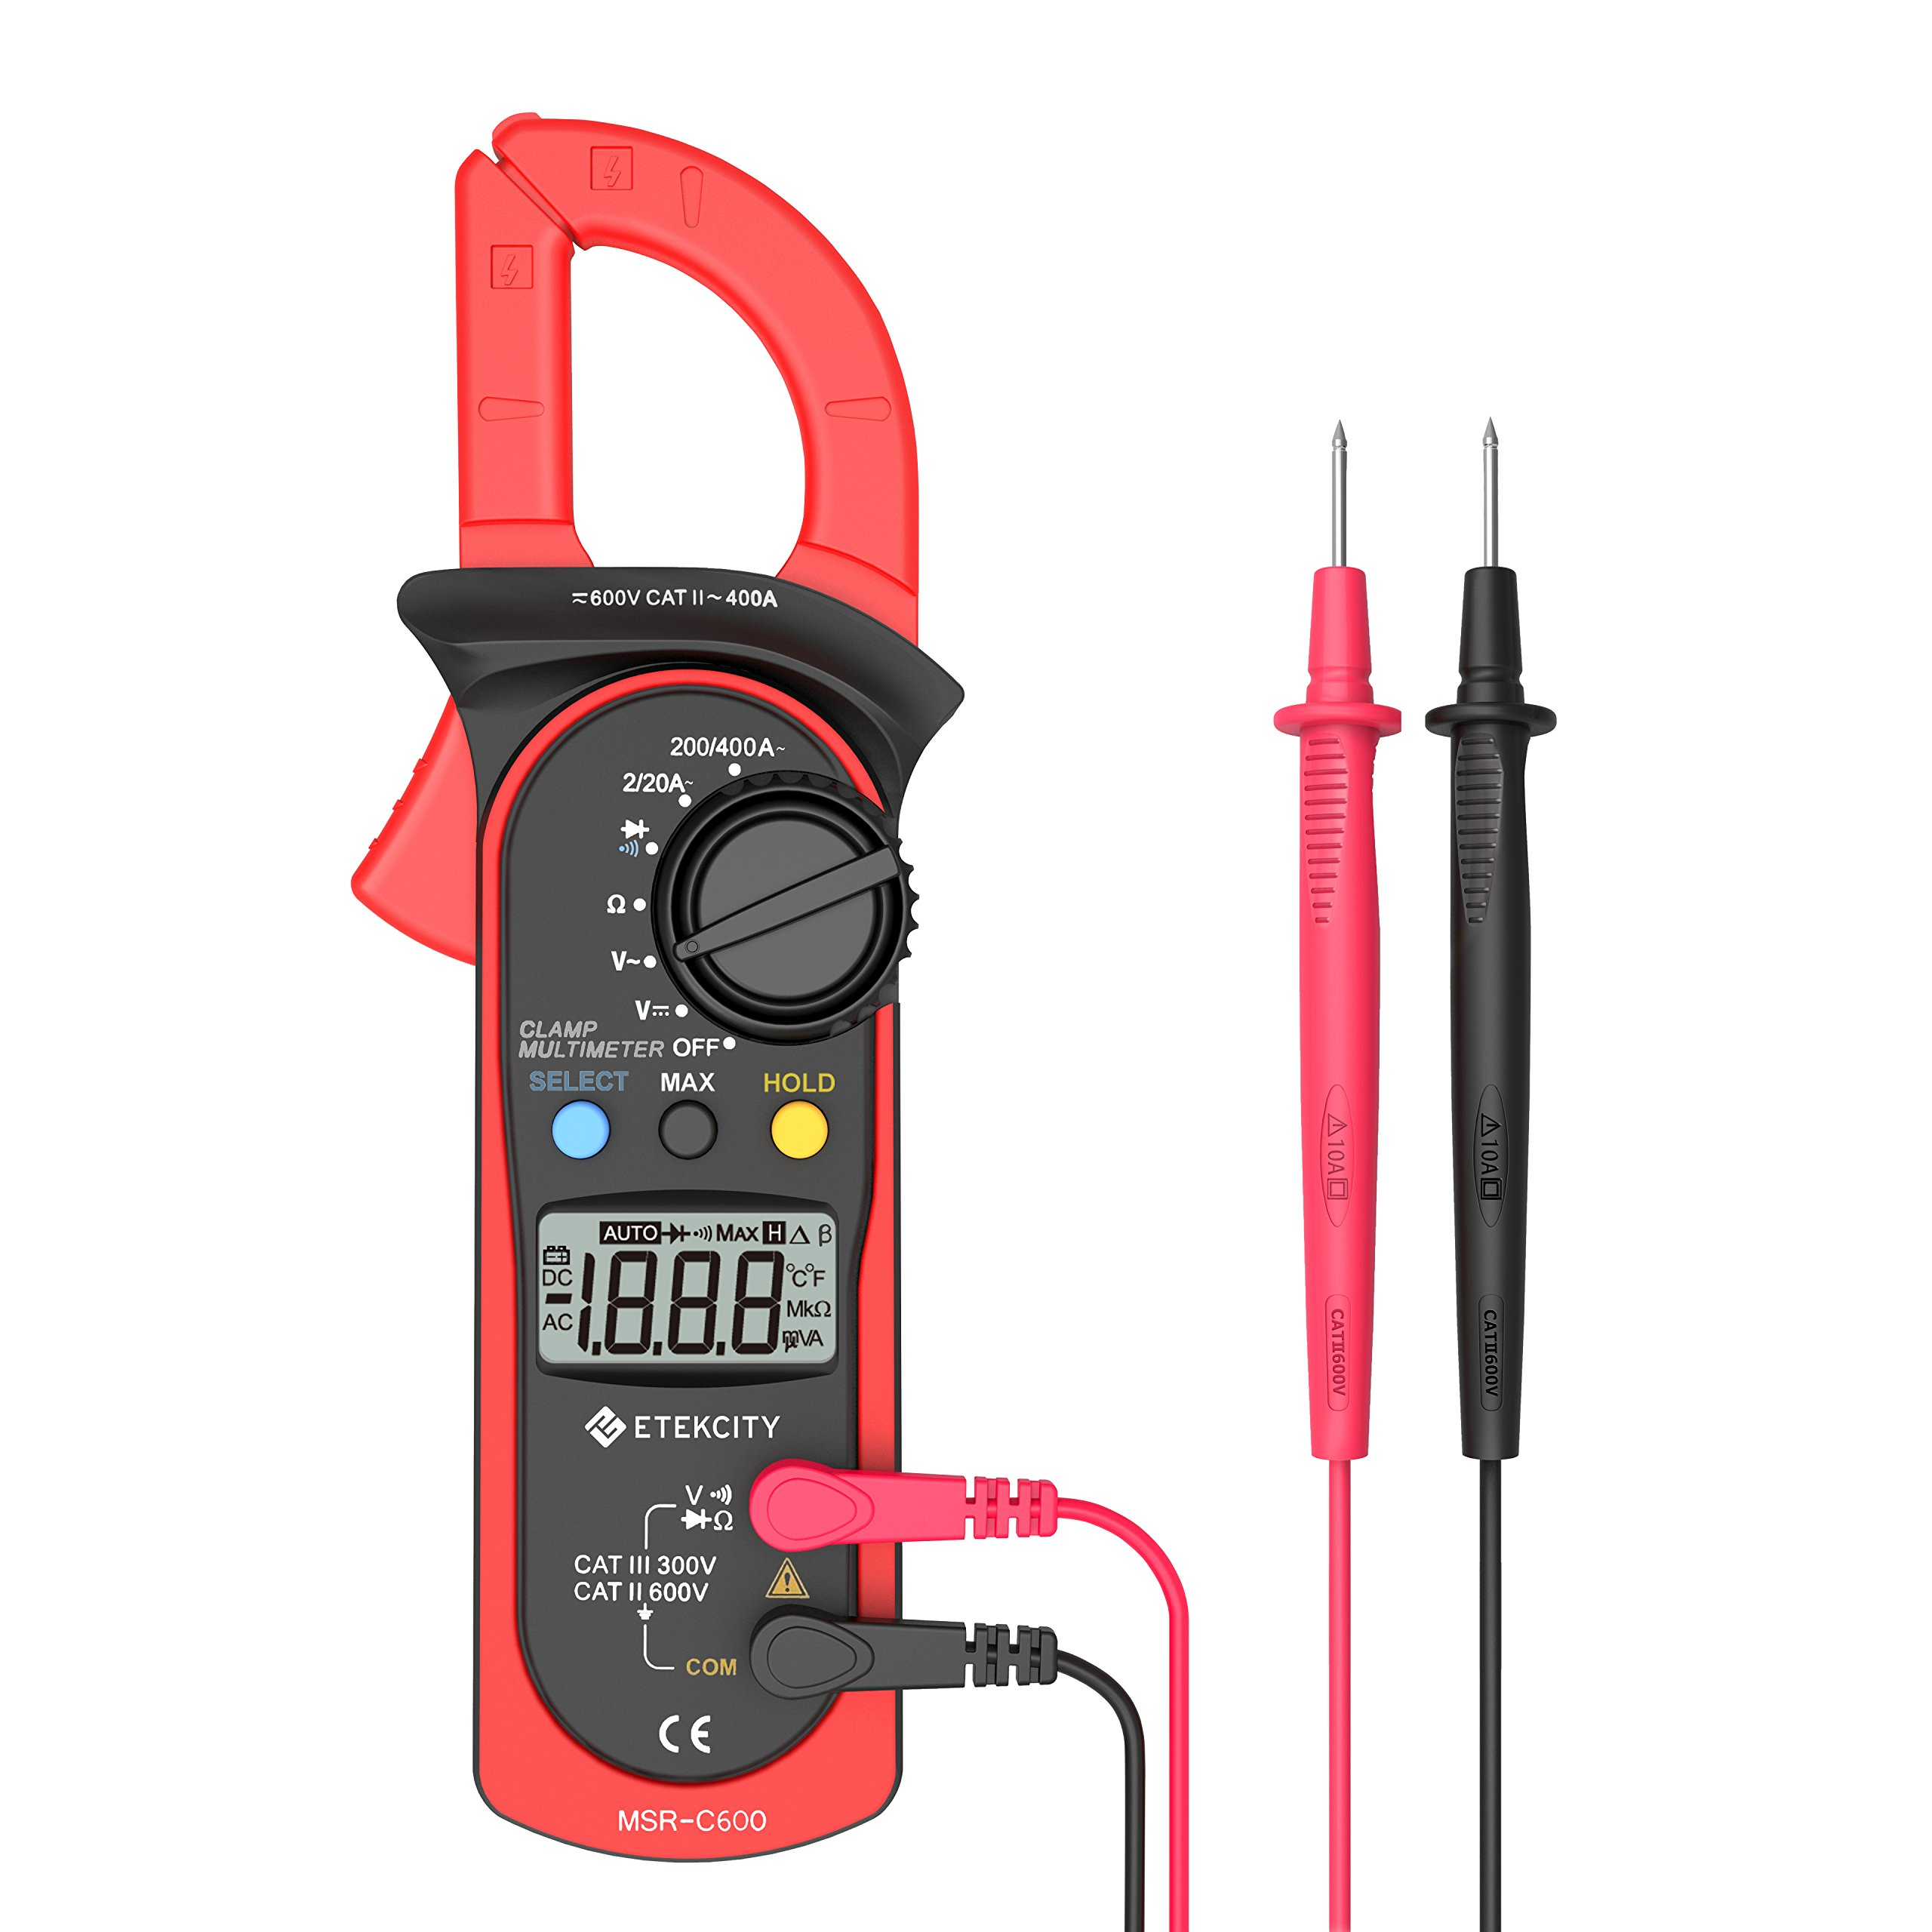 Etekcity MSR-C600 Digital Clamp Meter Multimeters, Auto-Ranging Multimeter AC/DC voltmeter with Voltage, AC Current, Amp, Volt, Ohm, Diode and Resistance Test Tester